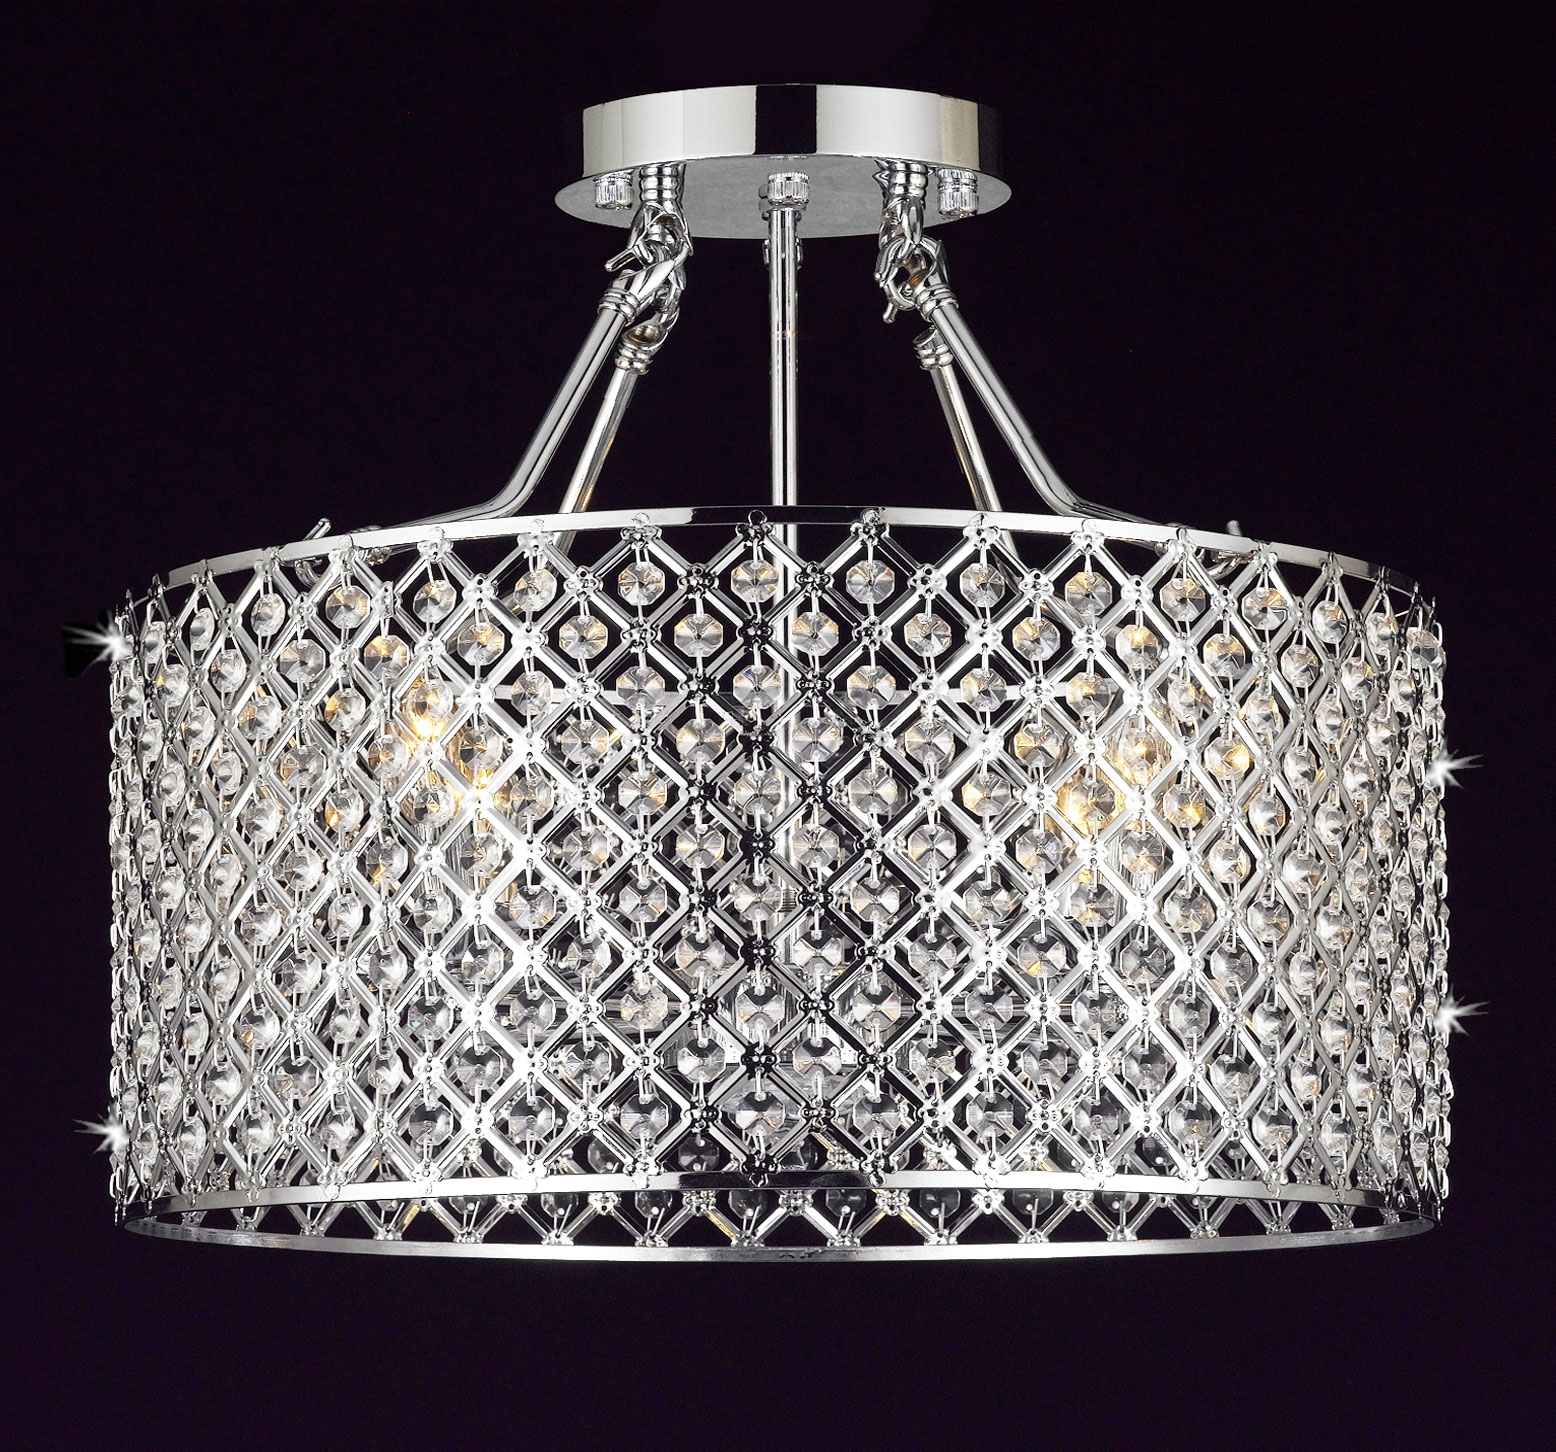 G7 B12white21304 Gallery Chandeliers Flushmount 4 Light Chrome Inside 4 Light Chrome Crystal Chandeliers (Image 8 of 25)